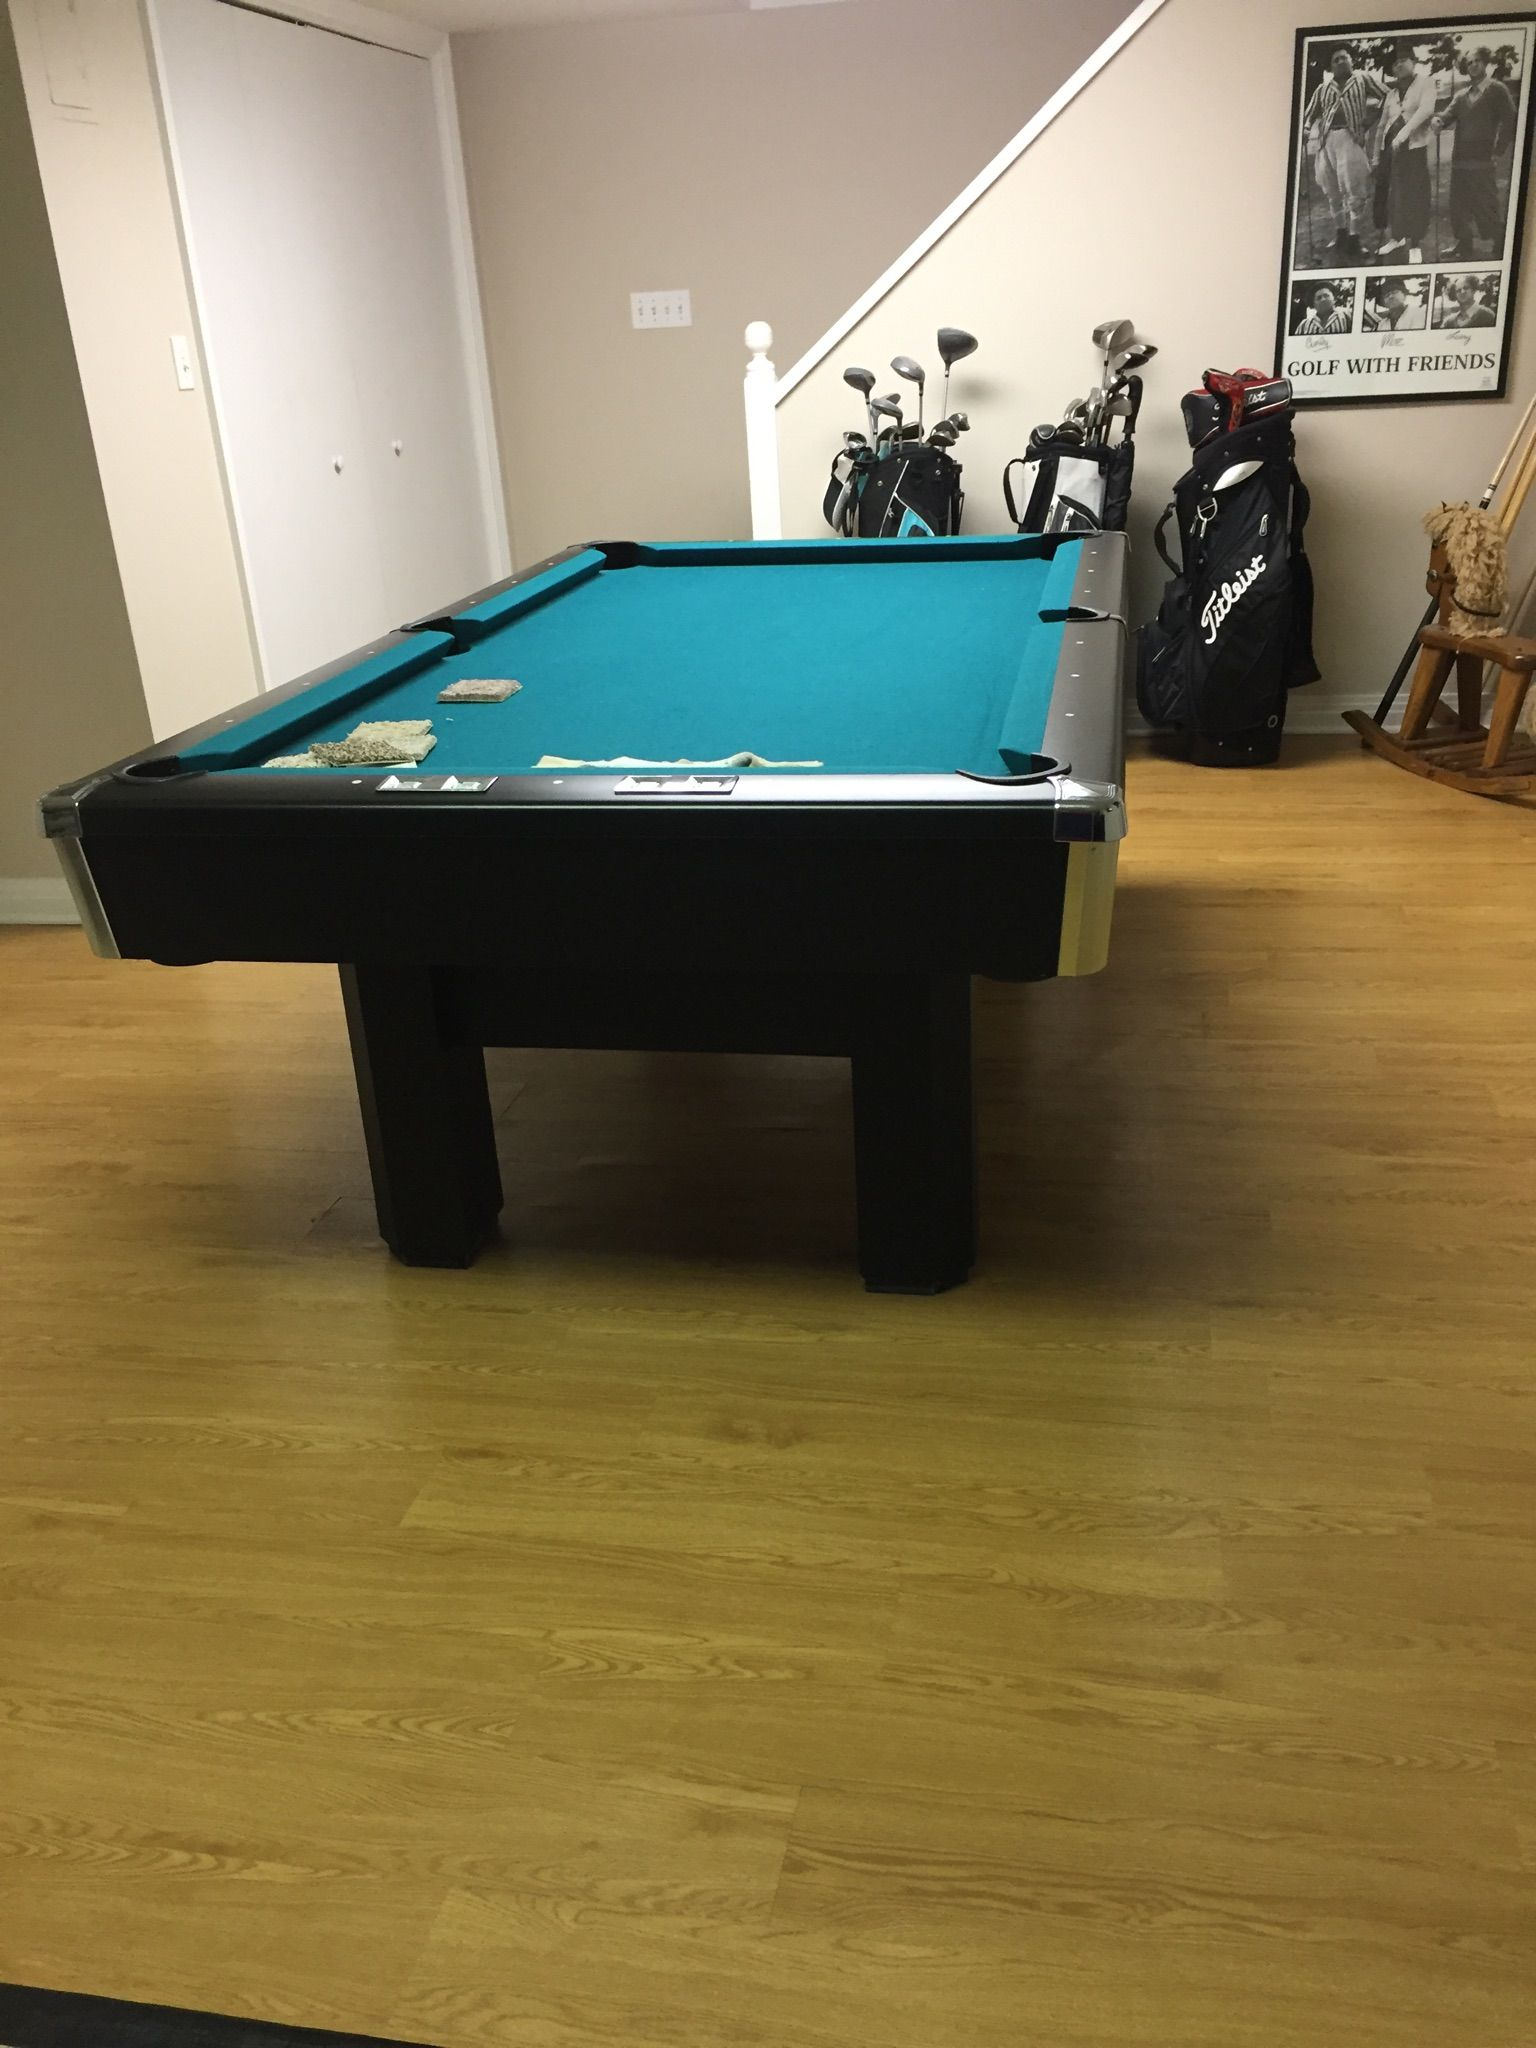 marietta tables table pool used cheap billiard